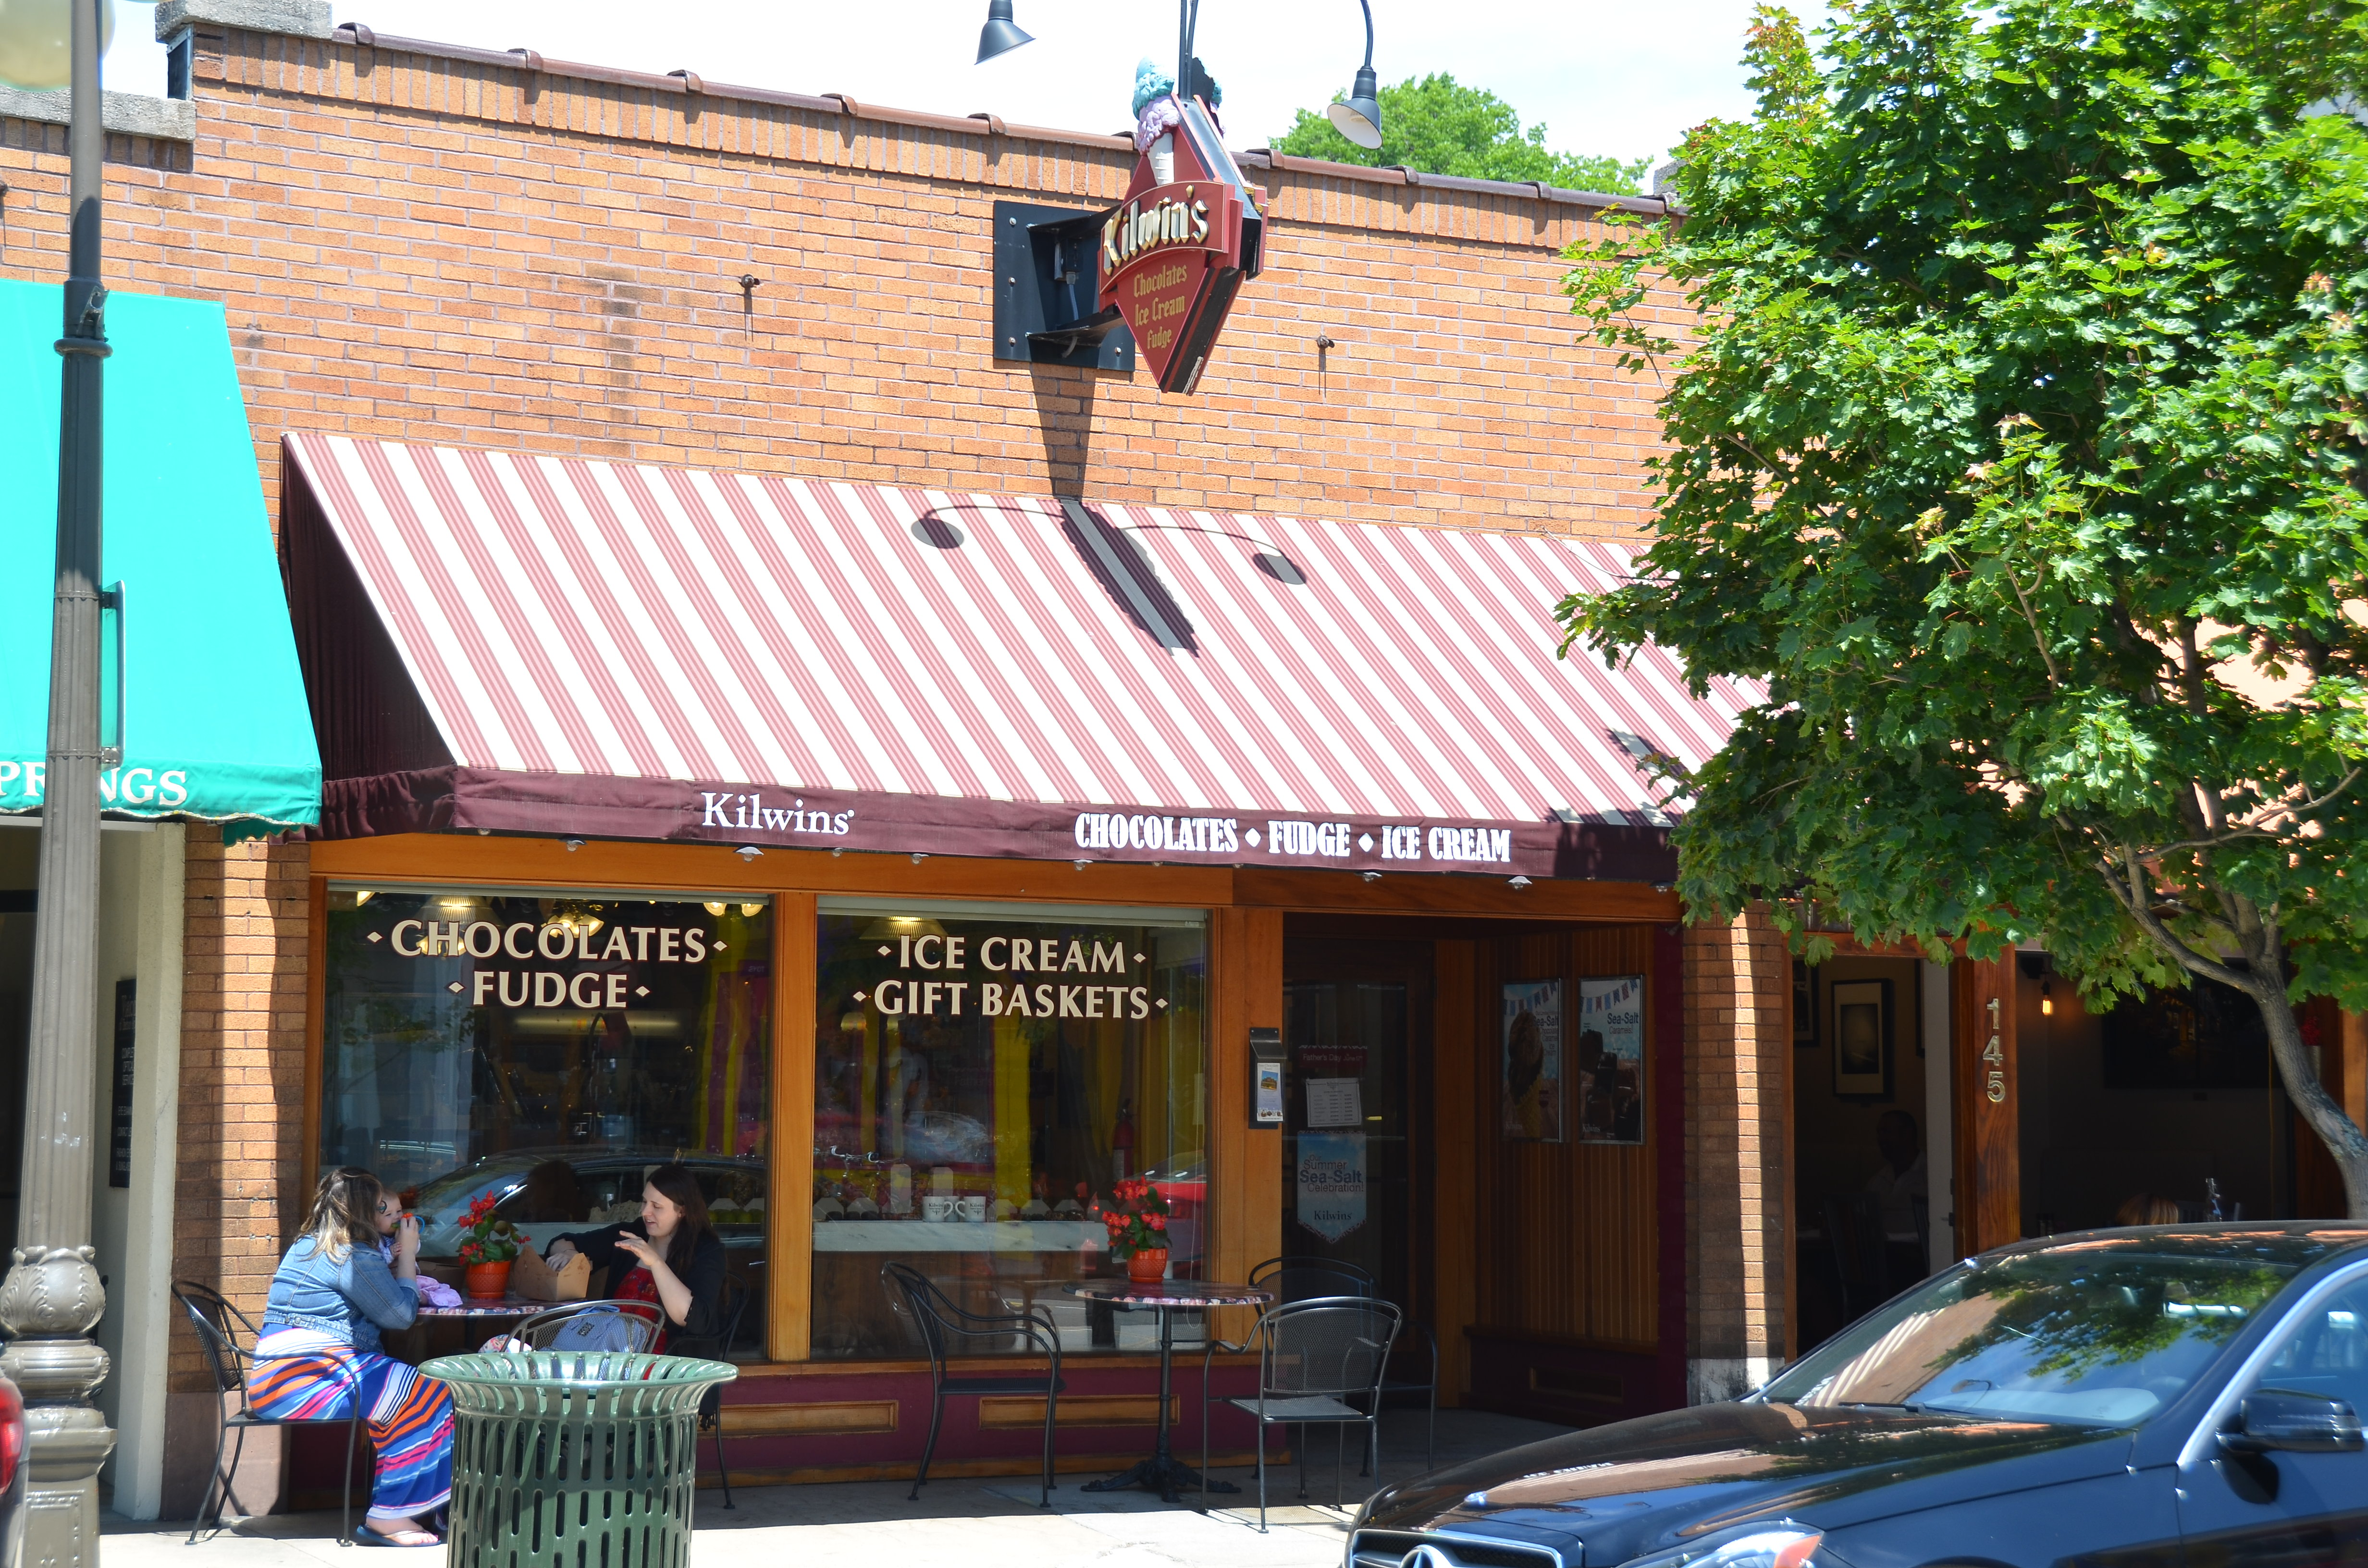 Exterior photo of The Kilwins Harbor Springs store front